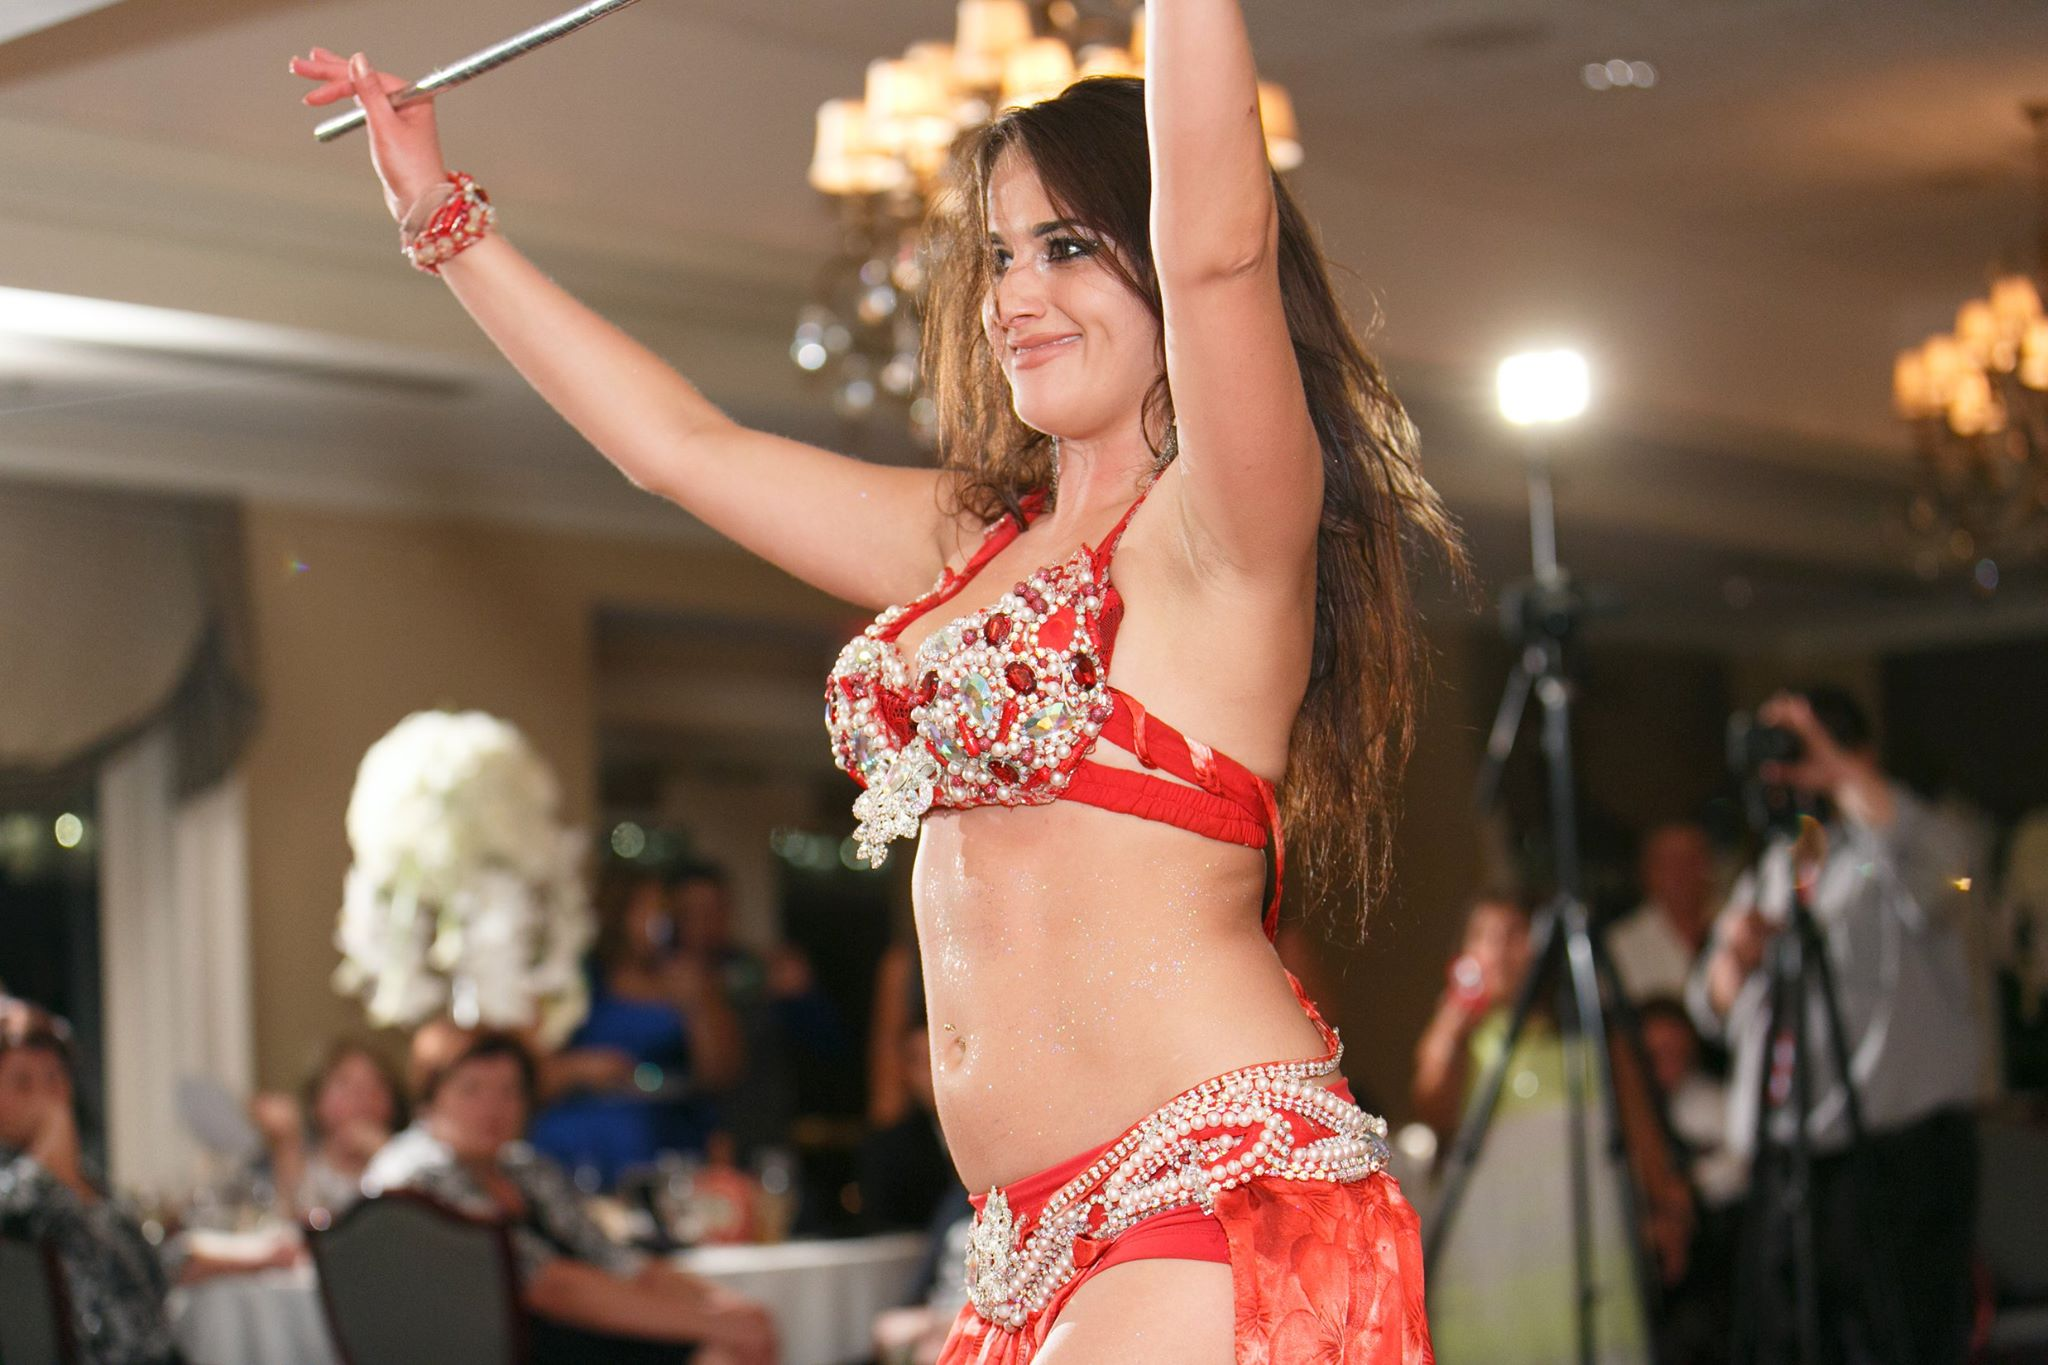 Ivanna Belly Dance LatinBallroomDance.com Studio NJ.jpg